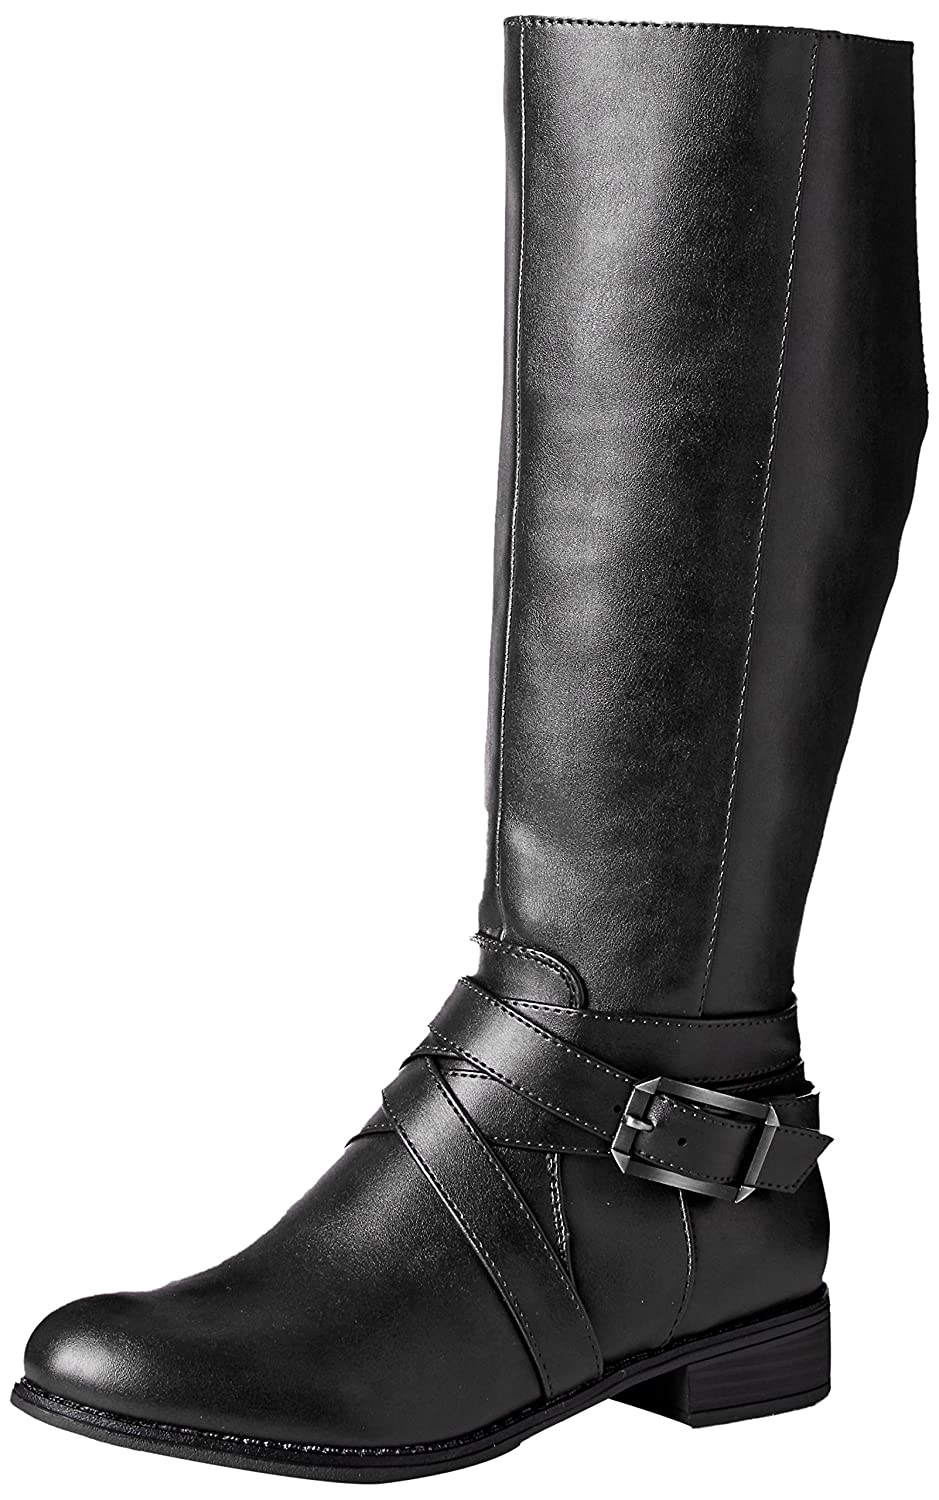 LifeStride Women's Subtle Equestrian Boot B01LX9LRMK 8.5 W US|Black